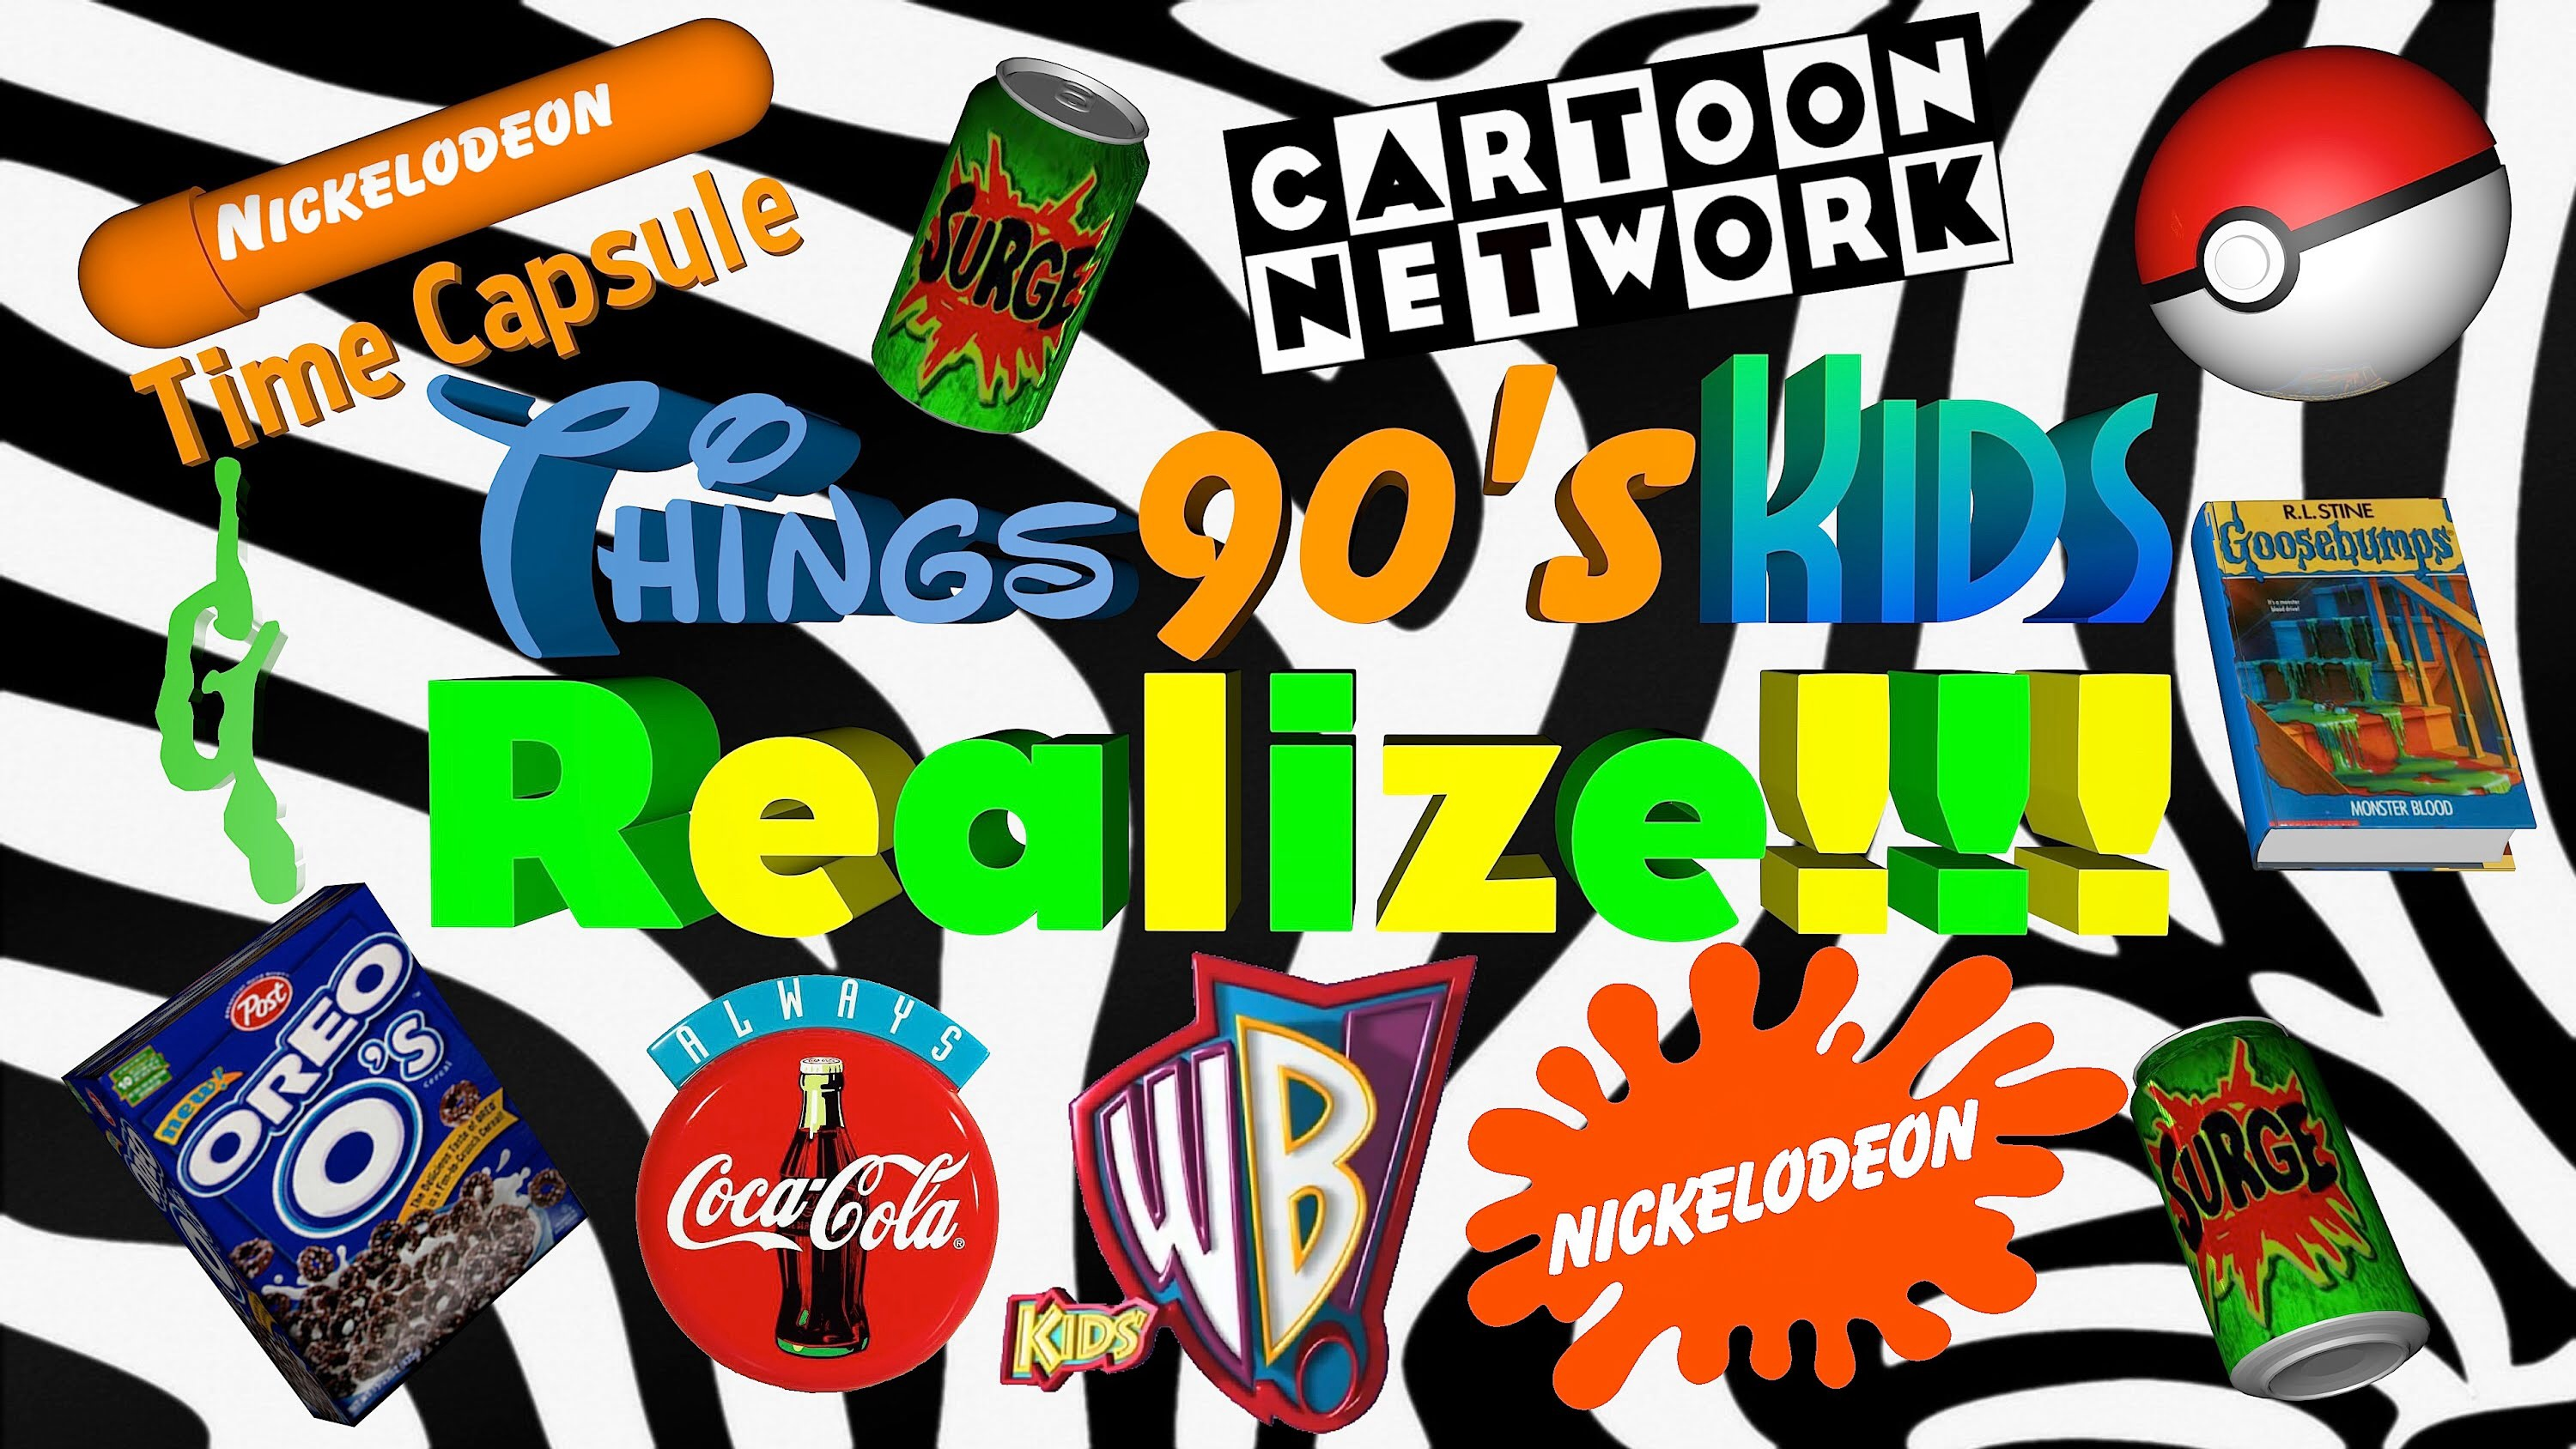 Next Wall Art Stickers 90 S Kids Images Things We 90s Kids Realize Hd Wallpaper